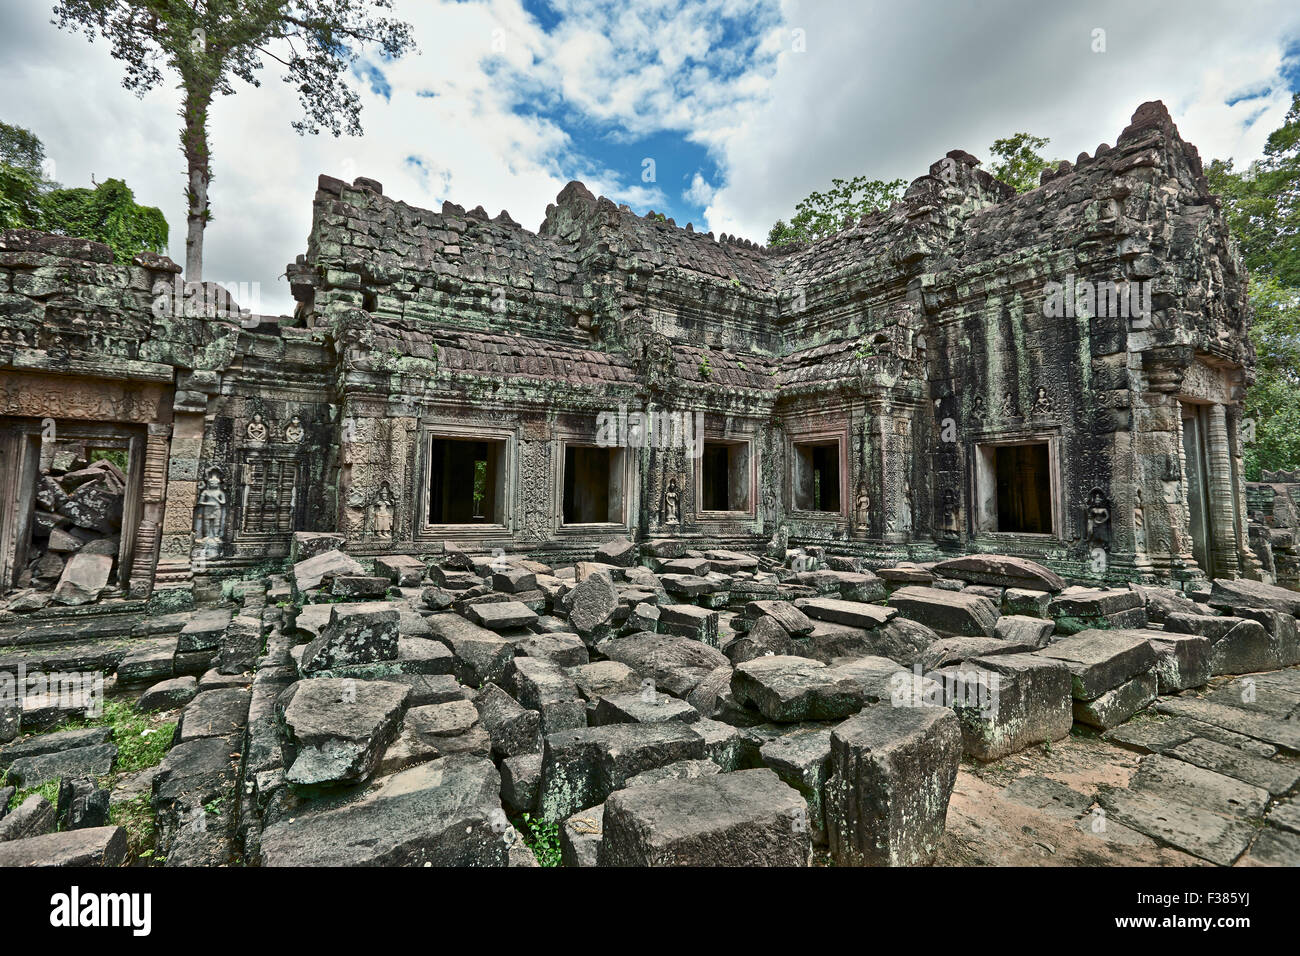 Preah Khan temple. Parc archéologique d'Angkor, la Province de Siem Reap, au Cambodge. Photo Stock